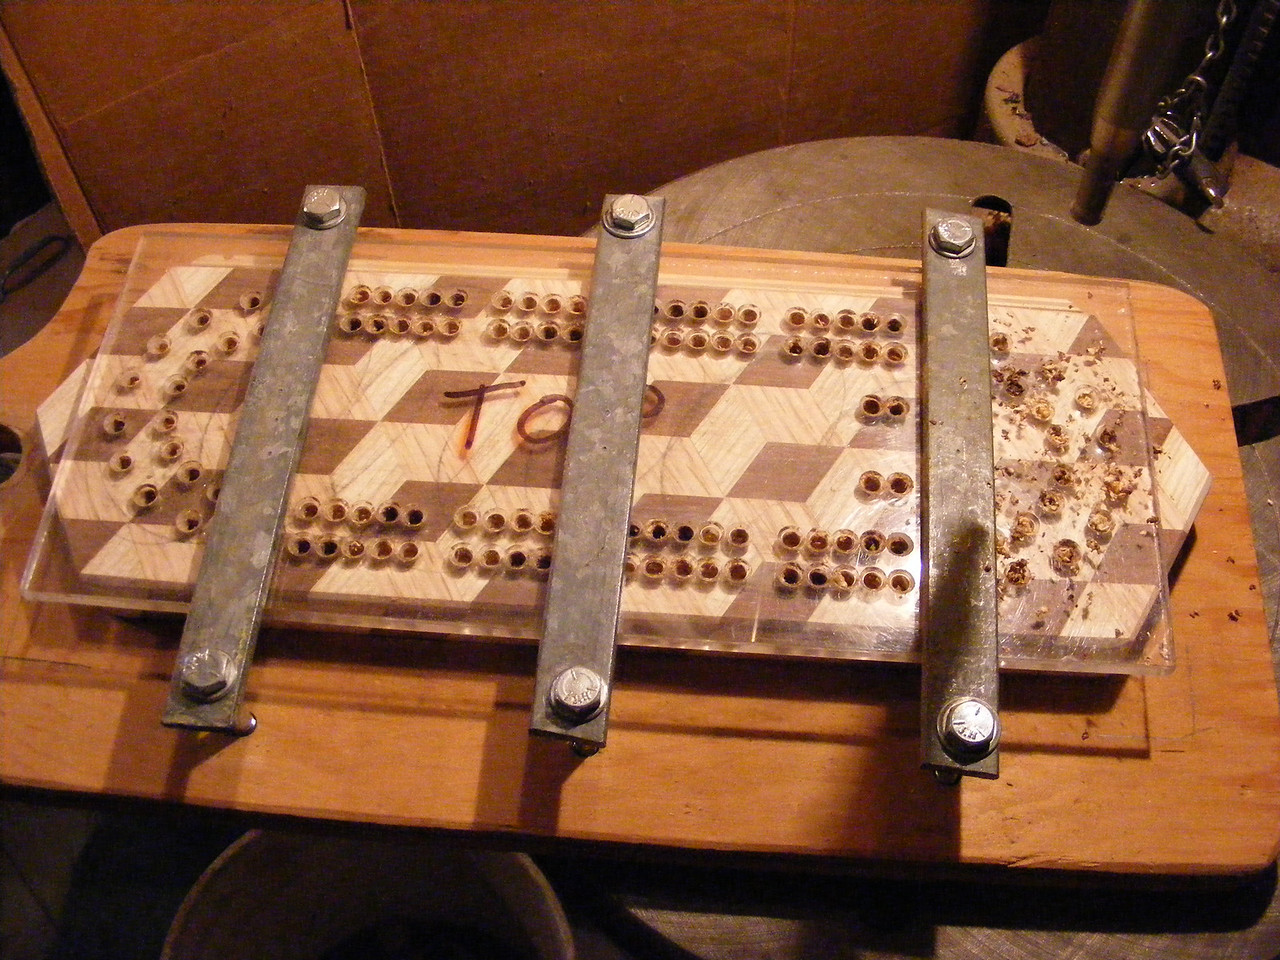 "27 - Making a Tumbling Block Cribbage Board <br /> I took a piece of ¼"" clear plastic and marked and drilled the holes then countersunk the edges of each hole a little. I use a self-centering bit to get the holes where I want them. I place the plastic where I want it and hold it in place with the 3 hold-down straps. I leave 2 straps holding the plastic when I am drilling the holes under the one I move aside. With the self-centering bit, you need to clean out the holes after you take the plastic off but you have them uniform at least."